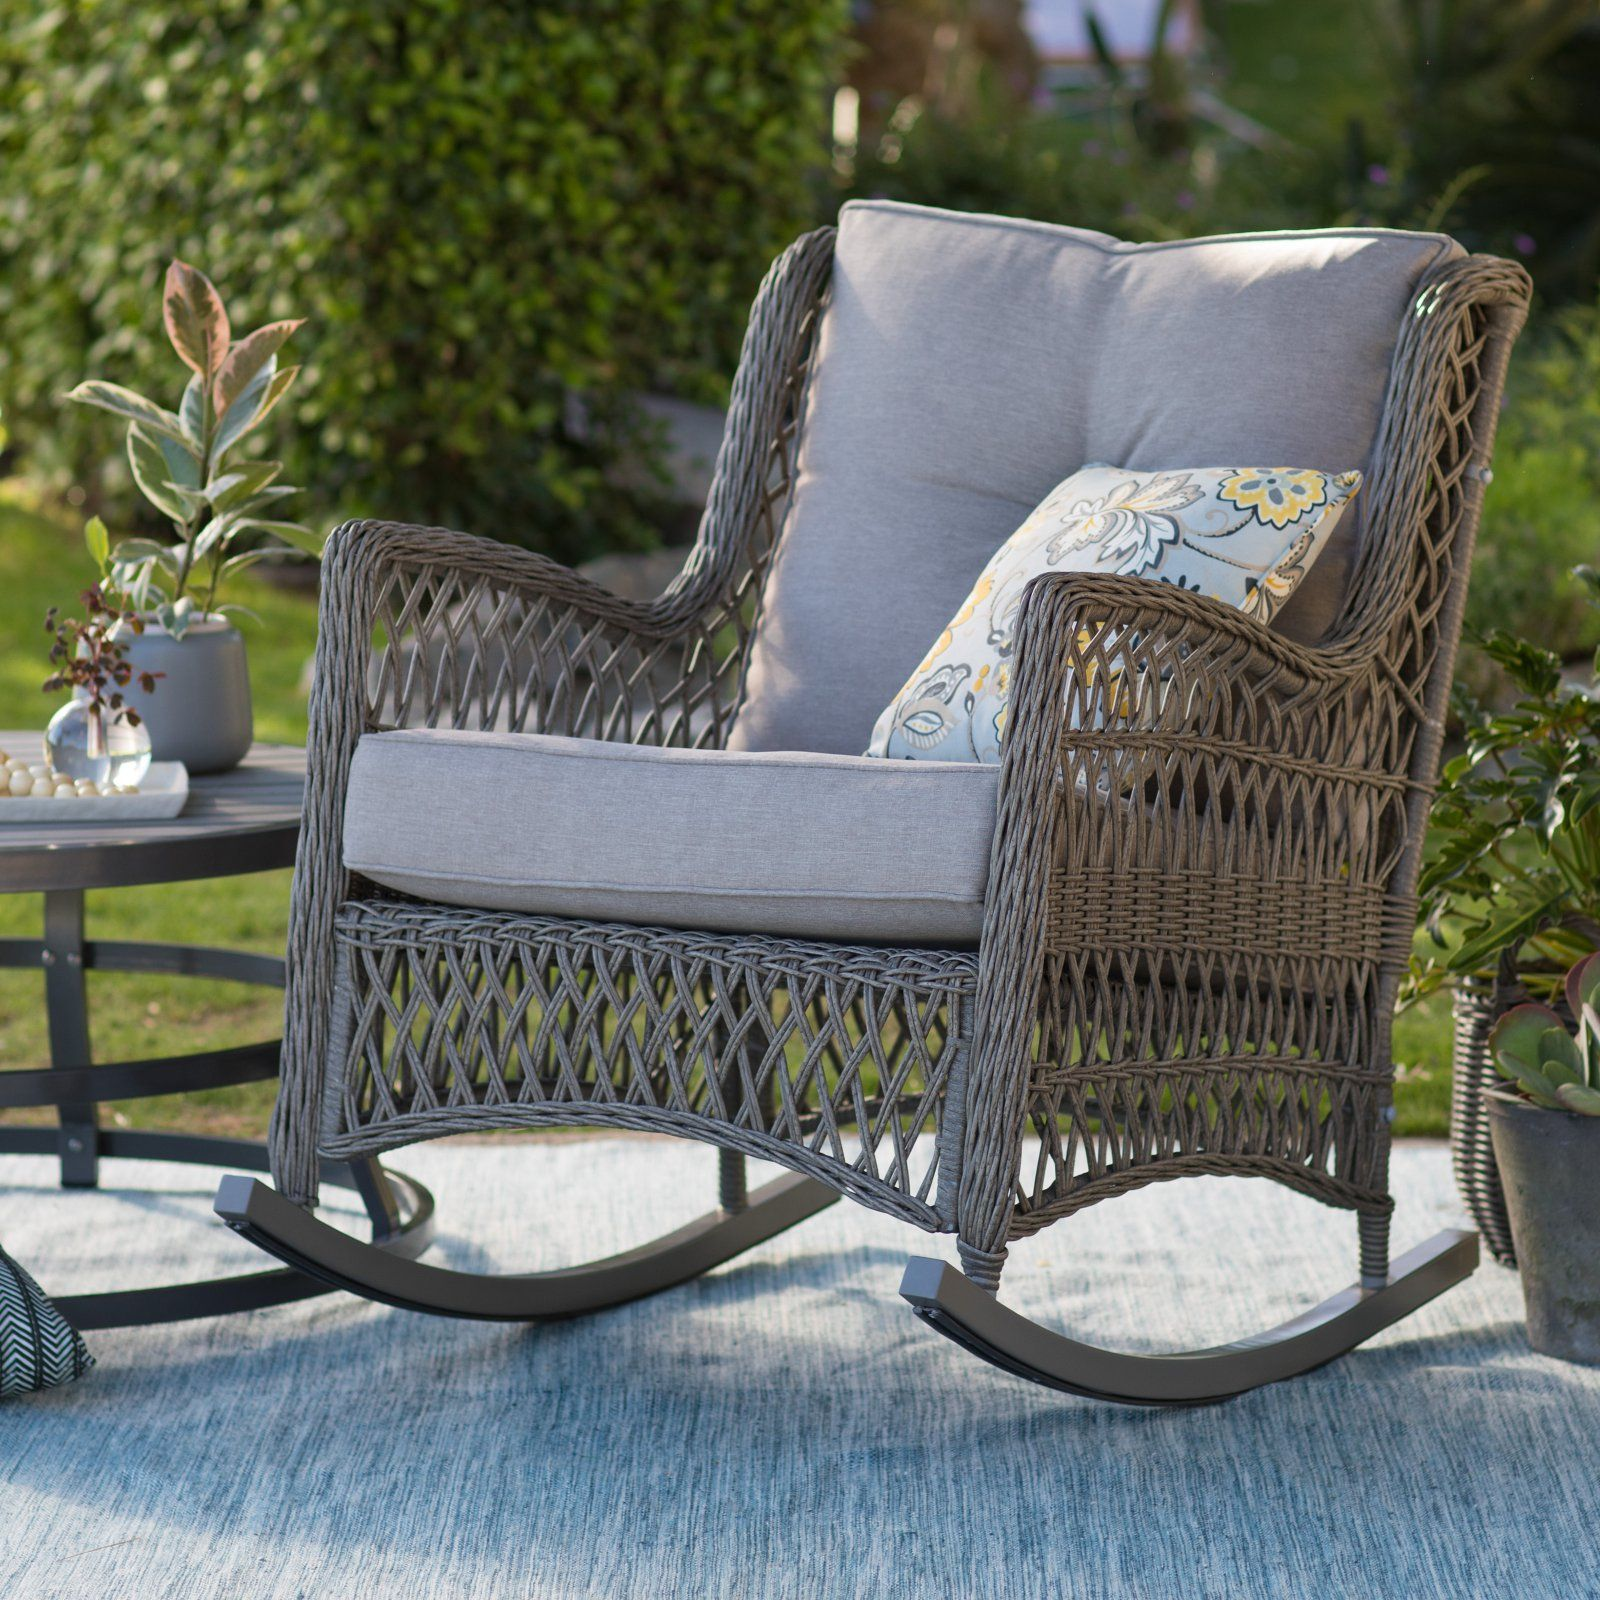 Patio & Garden in 2020 (With images) Wicker rocking